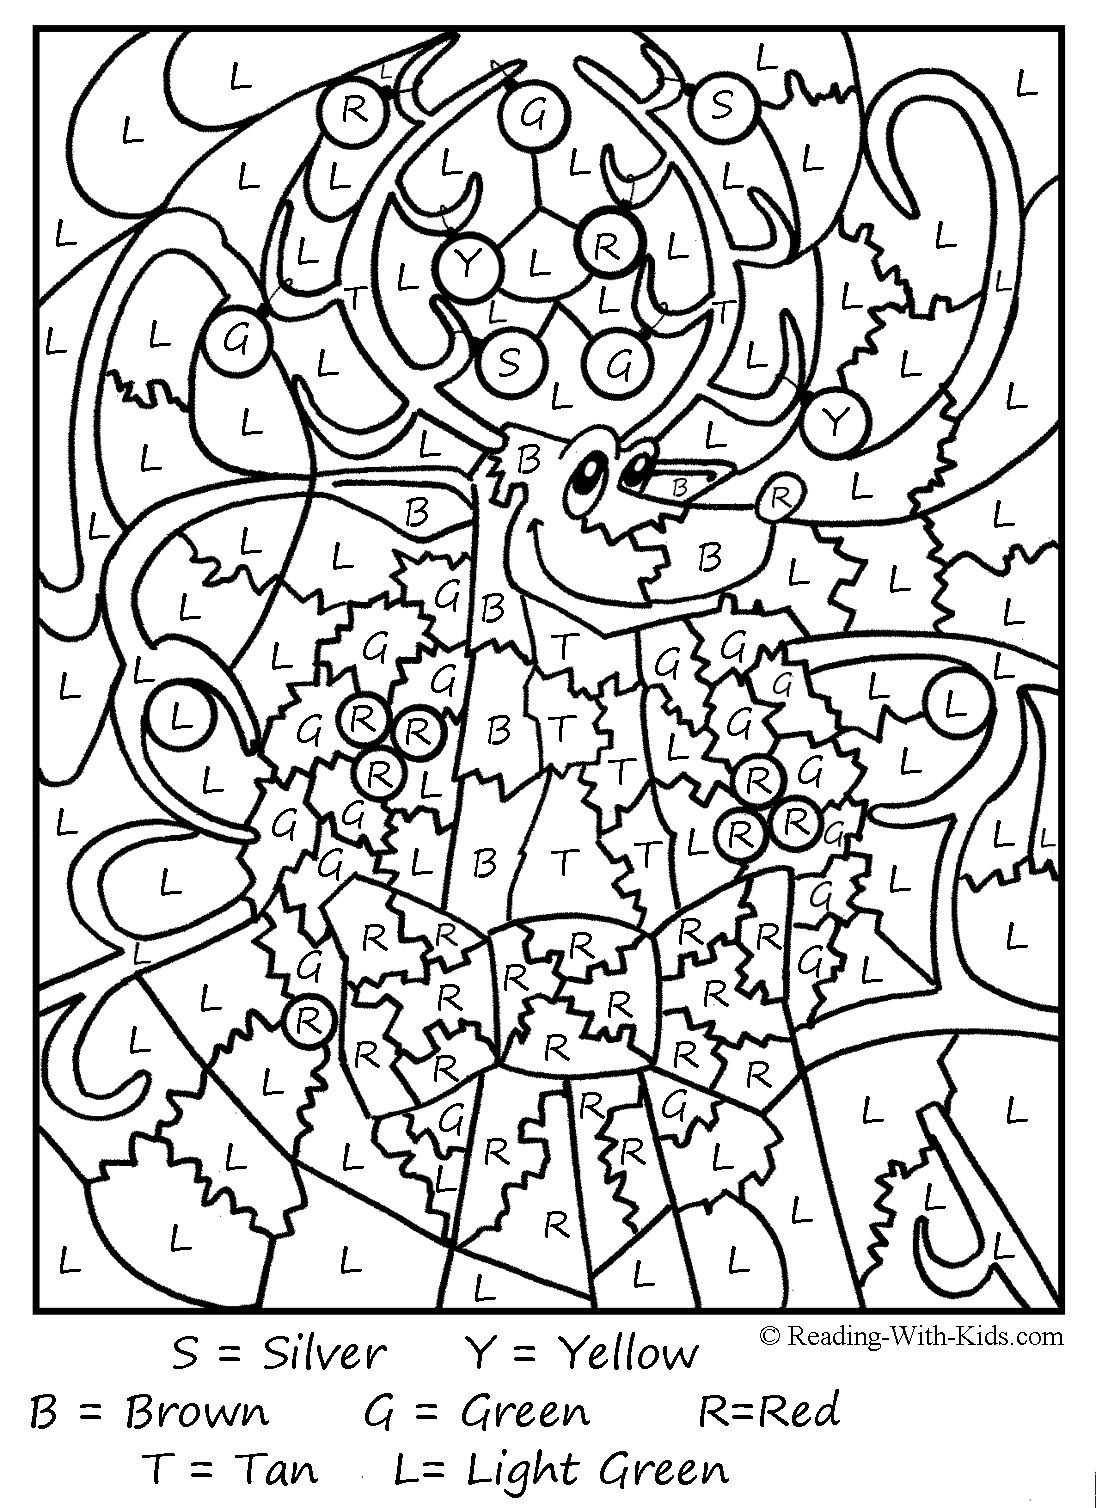 Colorbyletter and colorbynumber coloring pages are fun and – Christmas Math Coloring Worksheets